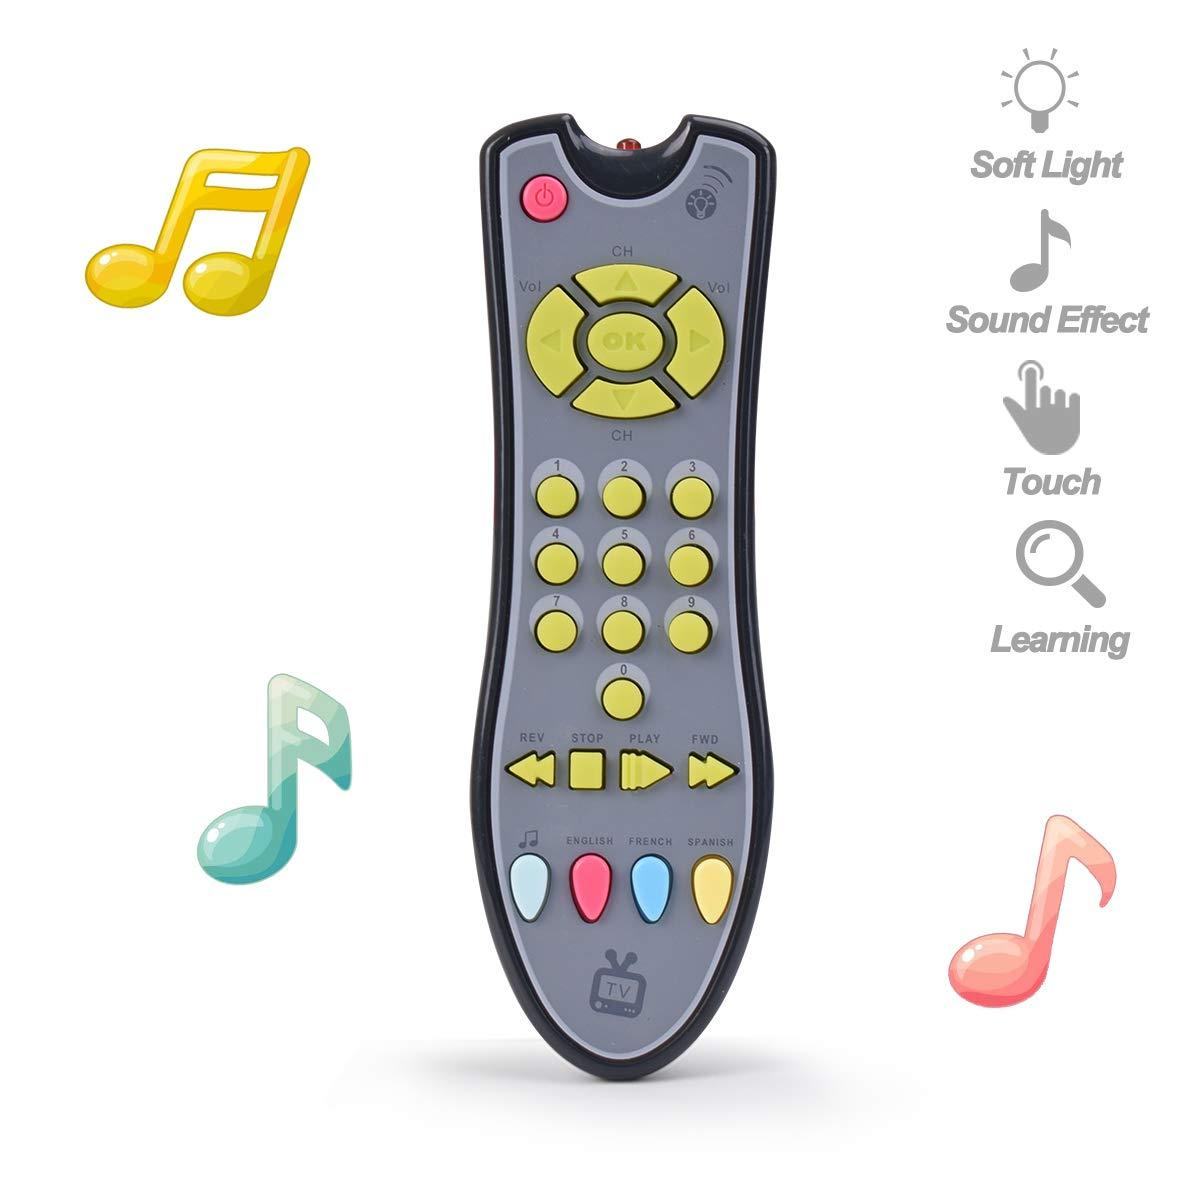 Toddlers Boys or Girls Preschool Education//Three Language Modes English French and Spanish//Black Body,Colored Buttons DUDU TV Remote Control Toy//Musical Play with Light and Sound//for 6 Months